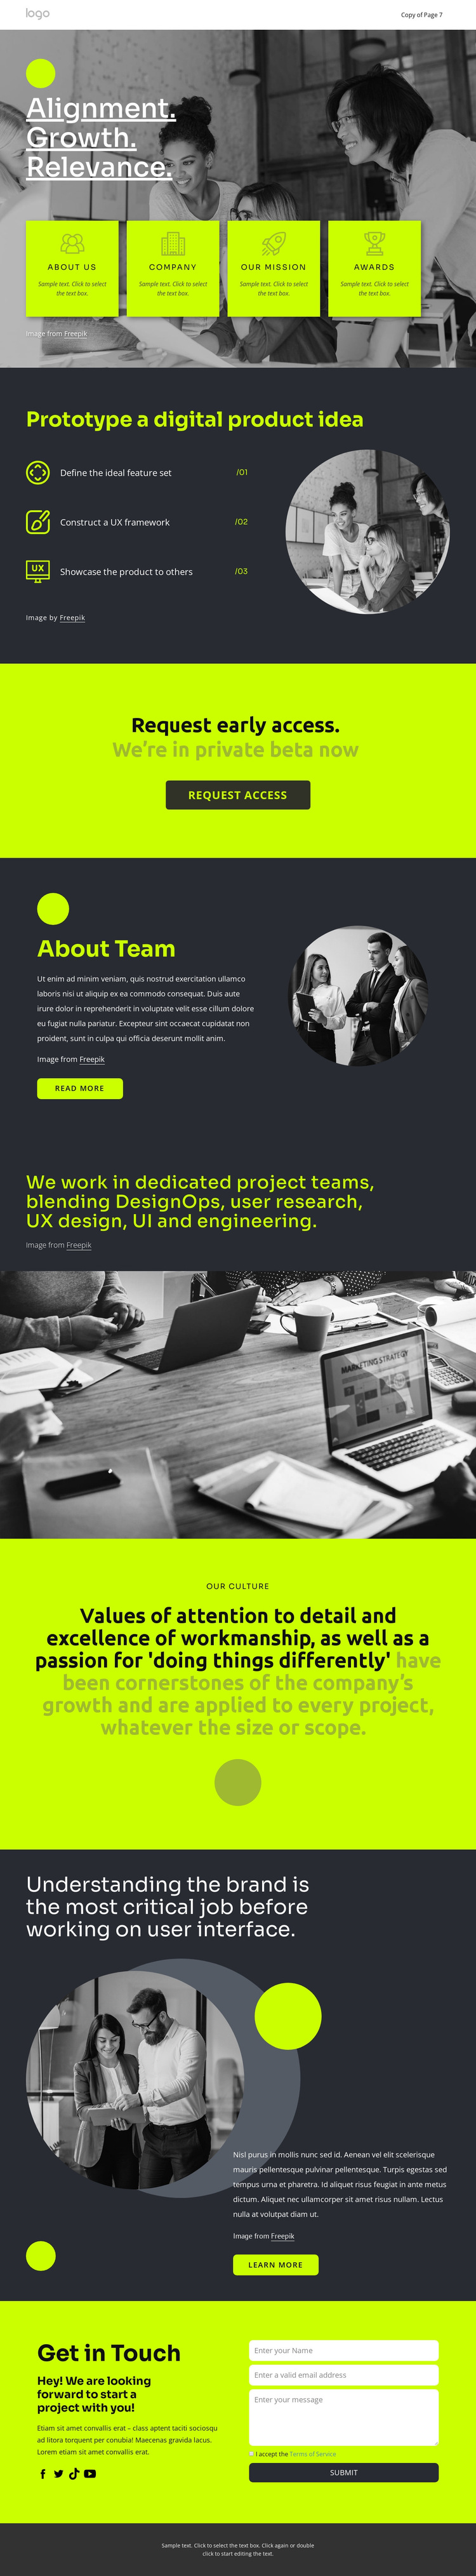 Build great digital products HTML5 Template